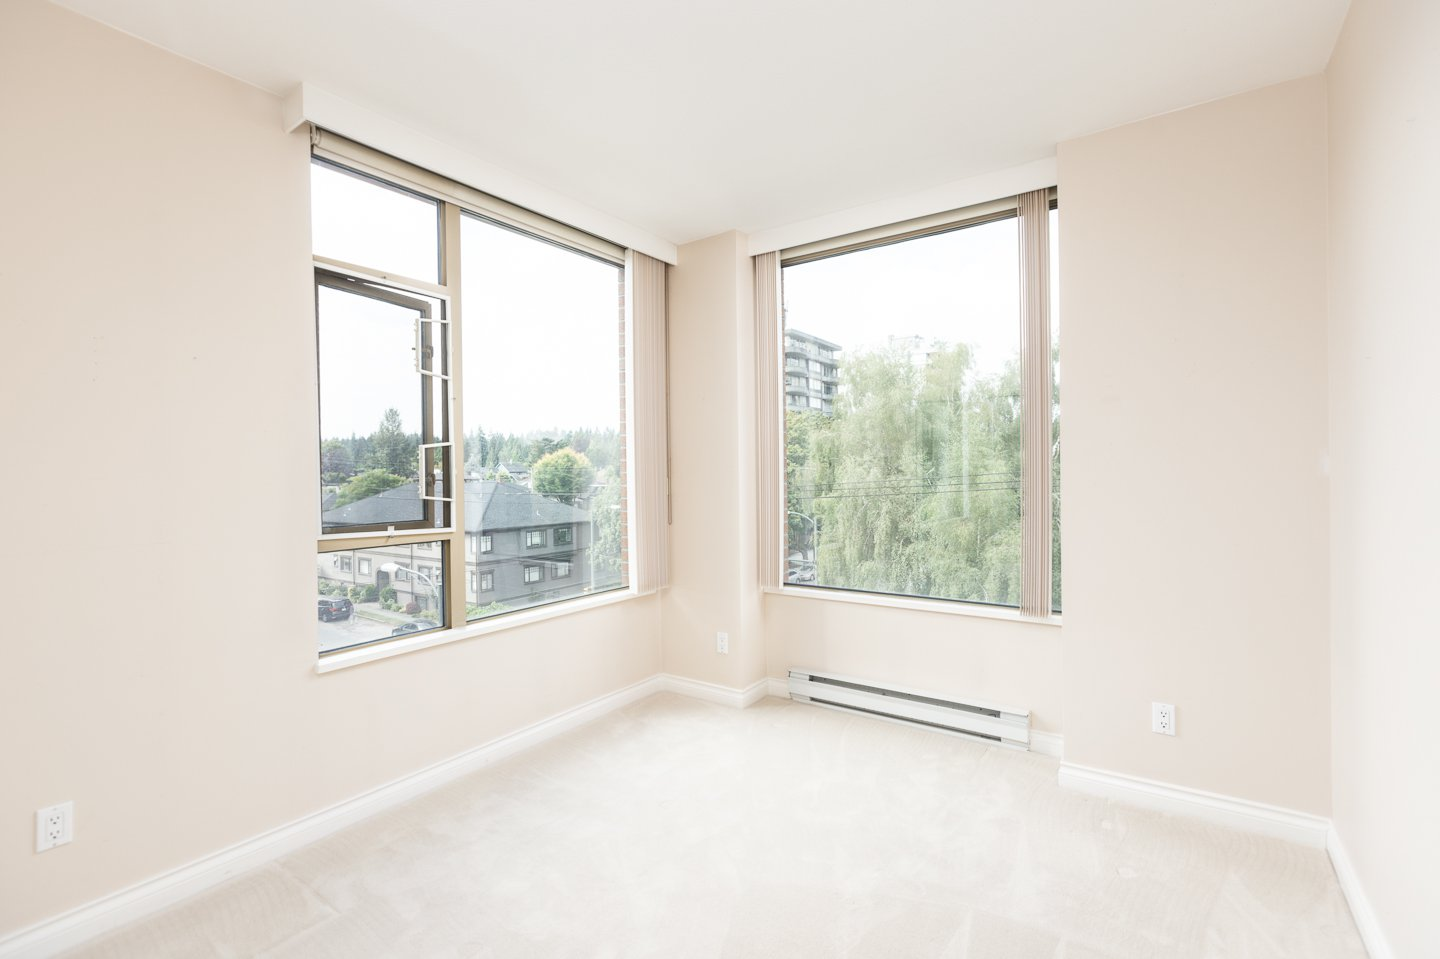 Photo 16: Photos: 401-2580 TOLMIE ST in VANCOUVER: Point Grey Condo for sale (Vancouver West)  : MLS®# R2397003